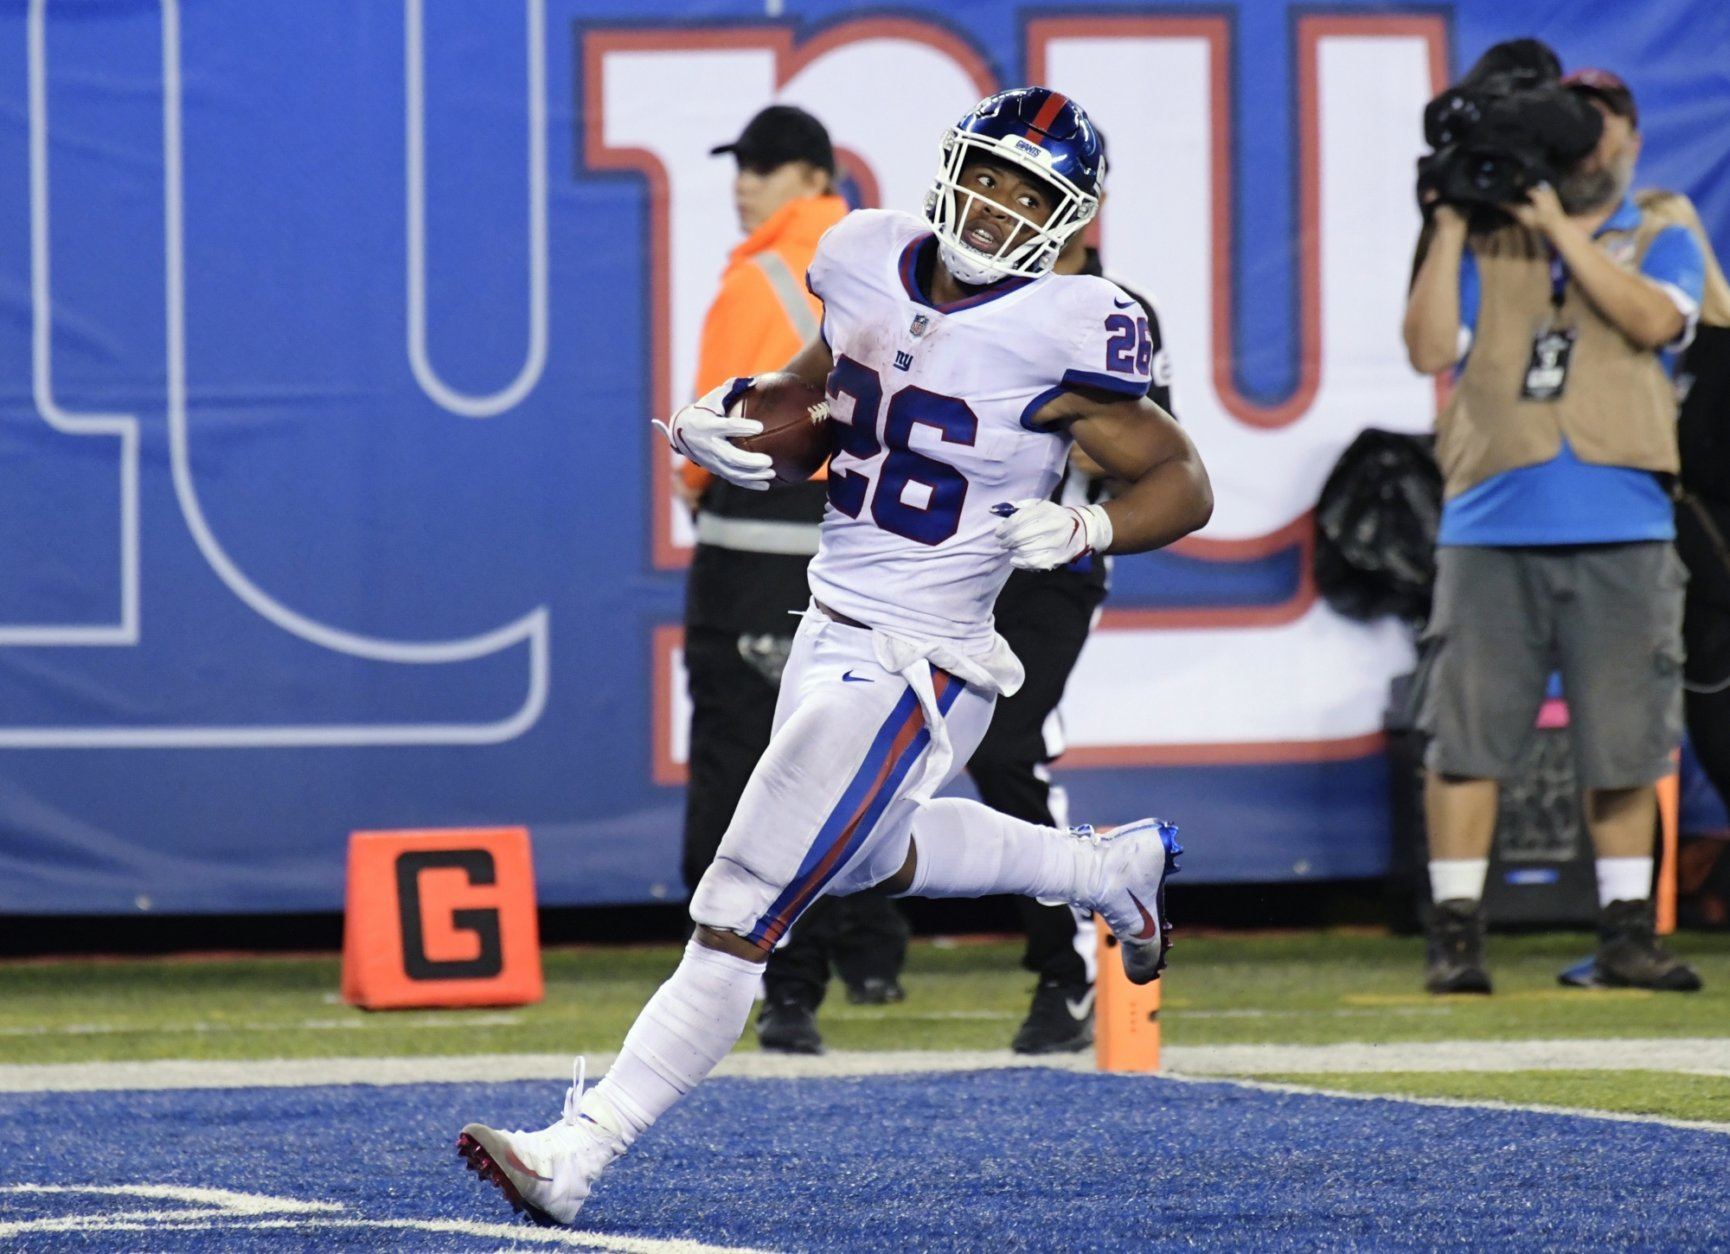 New York Giants running back Saquon Barkley runs in for a touchdown during the second half of the team's NFL football game against the Philadelphia Eagles on Thursday, Oct. 11, 2018, in East Rutherford, N.J. (AP Photo/Bill Kostroun)